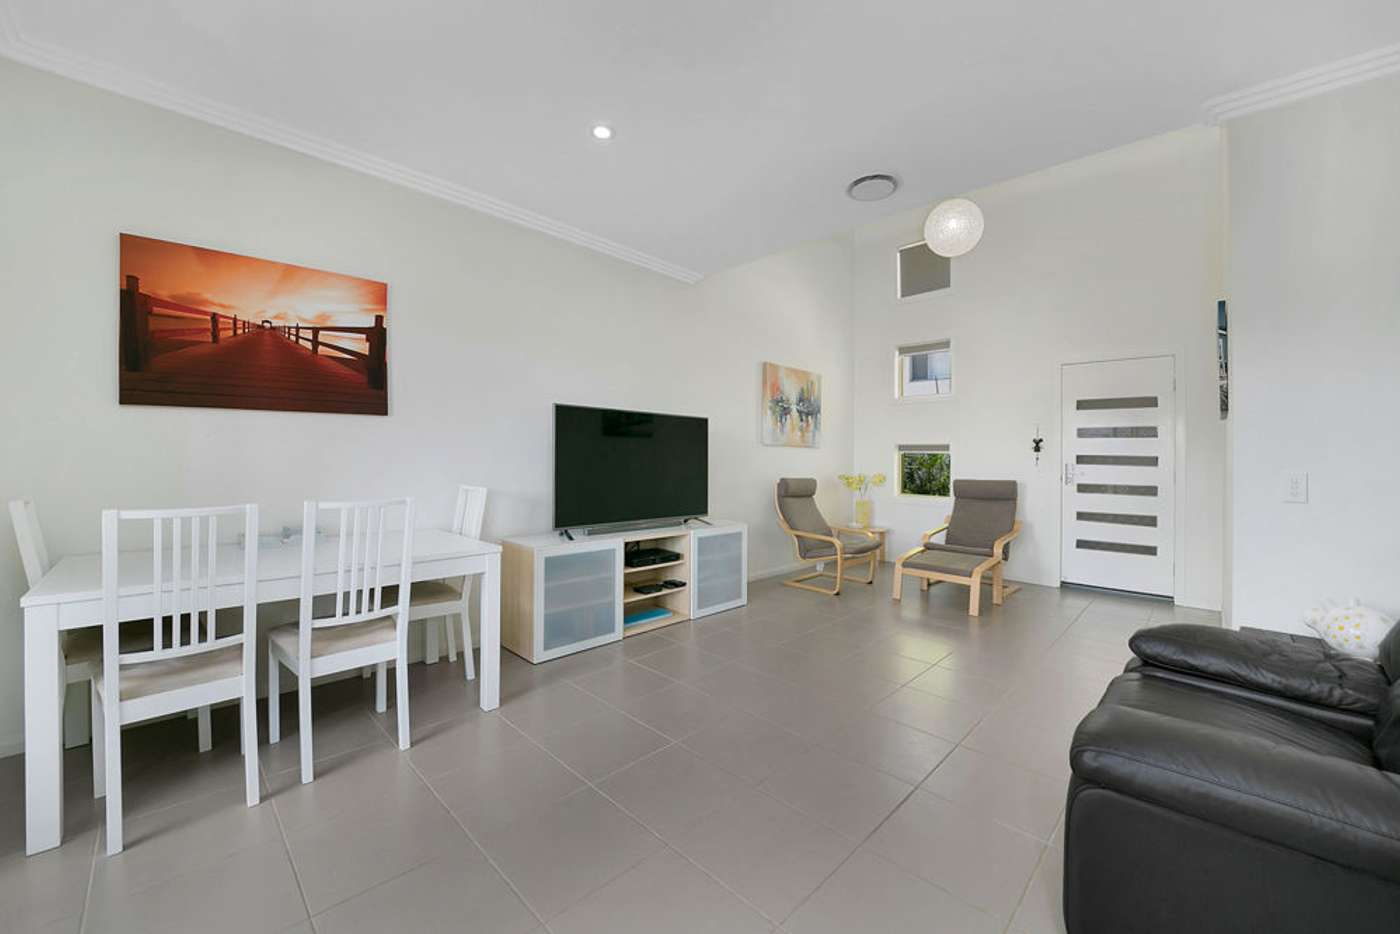 Fifth view of Homely unit listing, 28/5 Pine Valley Drive, Joyner QLD 4500